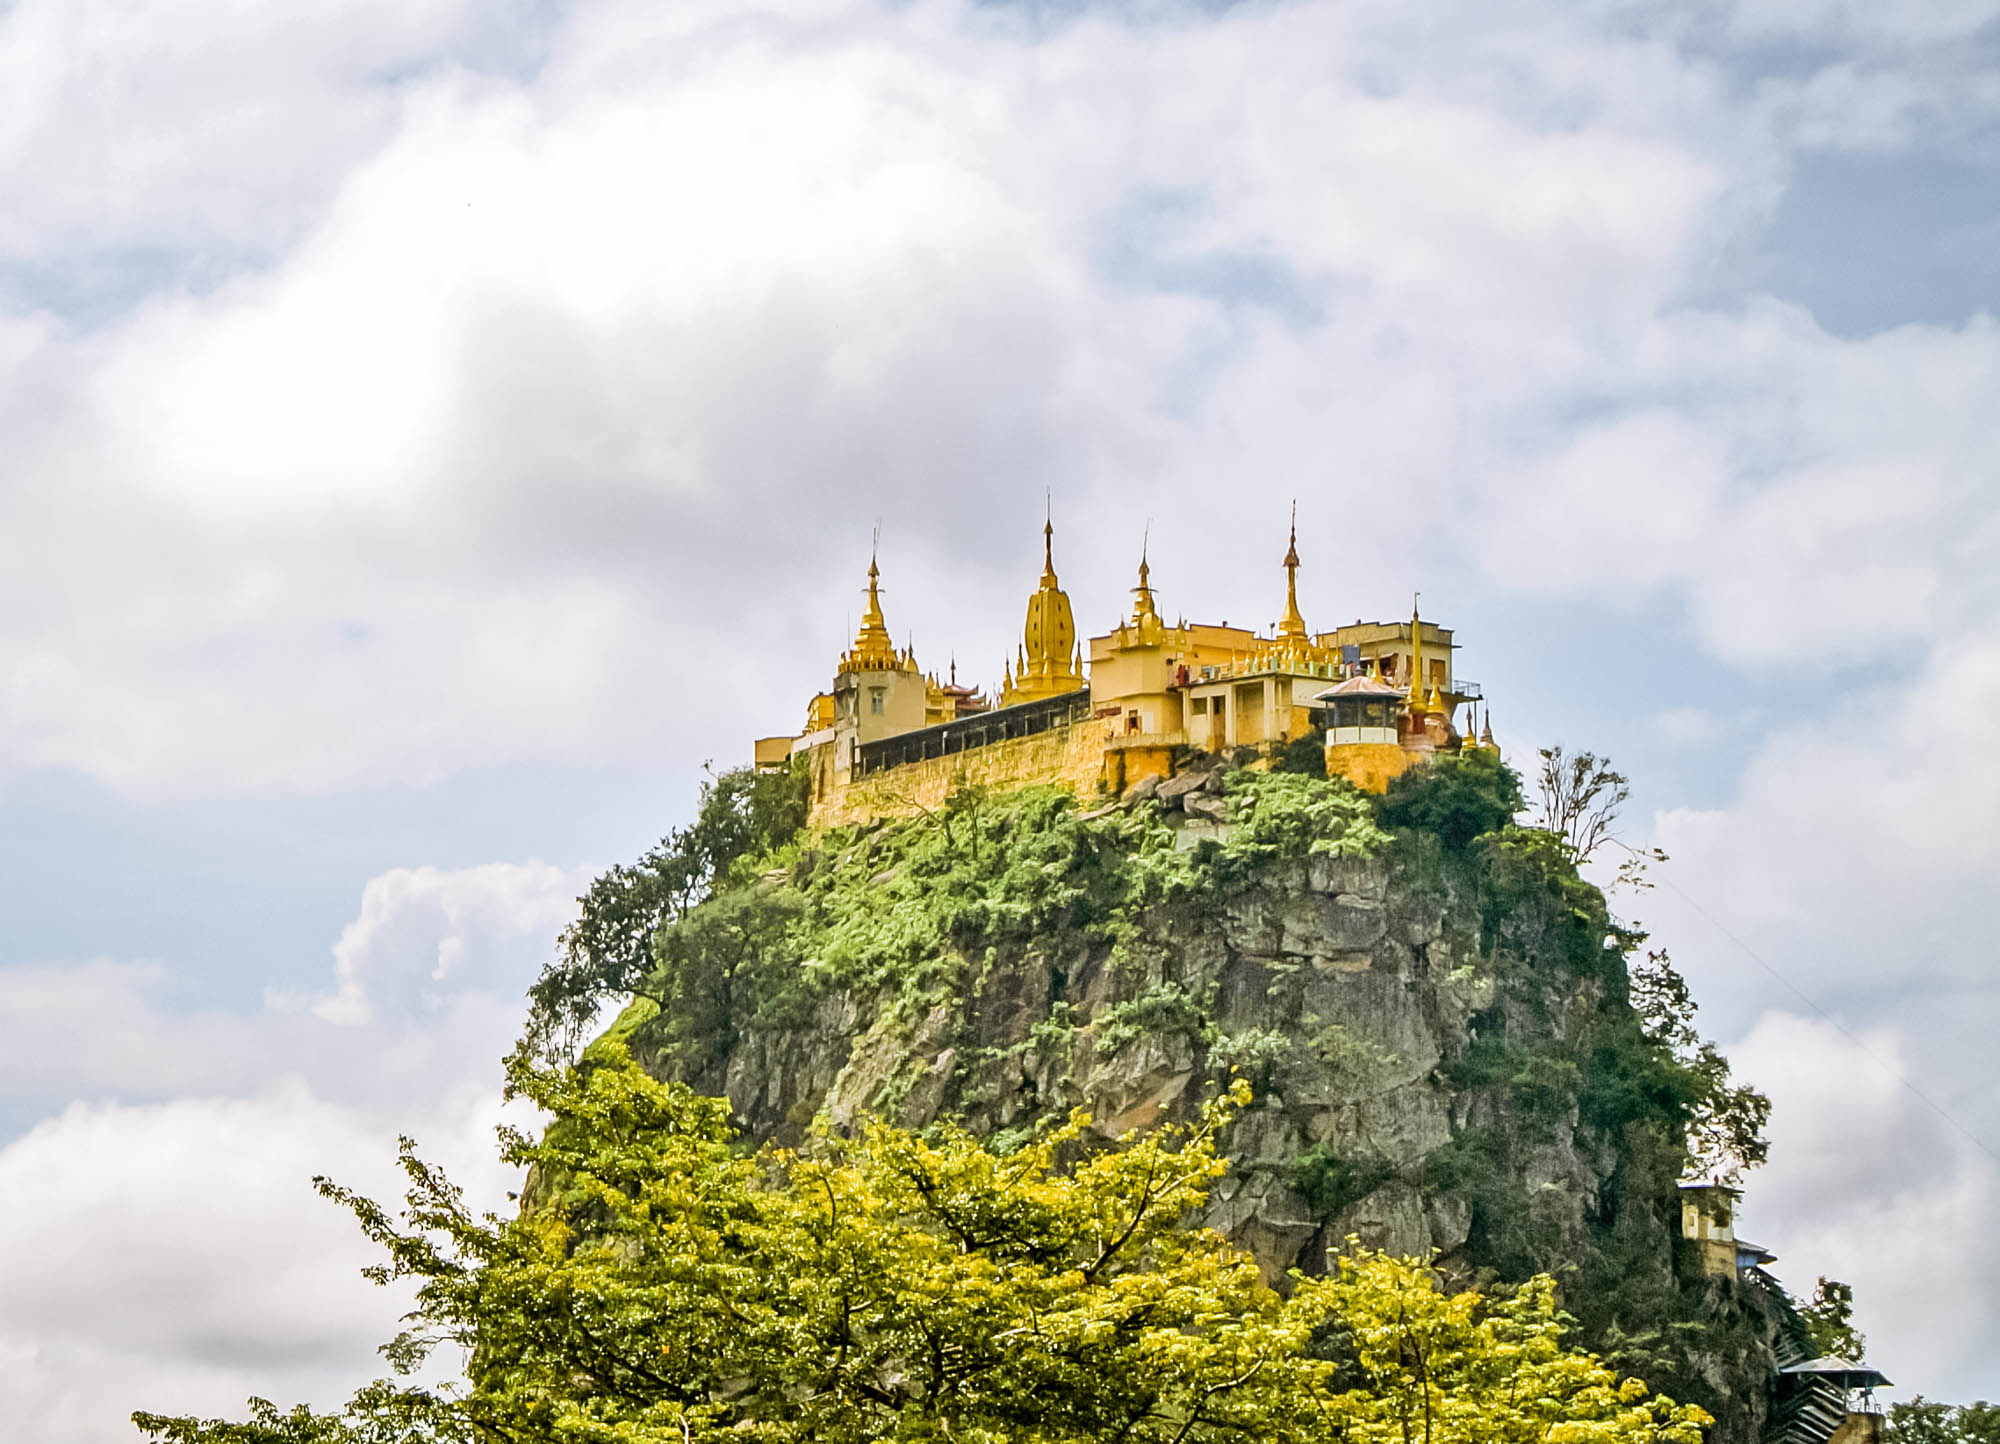 Mount Popa near Bagan on the Myanmar Itinerary